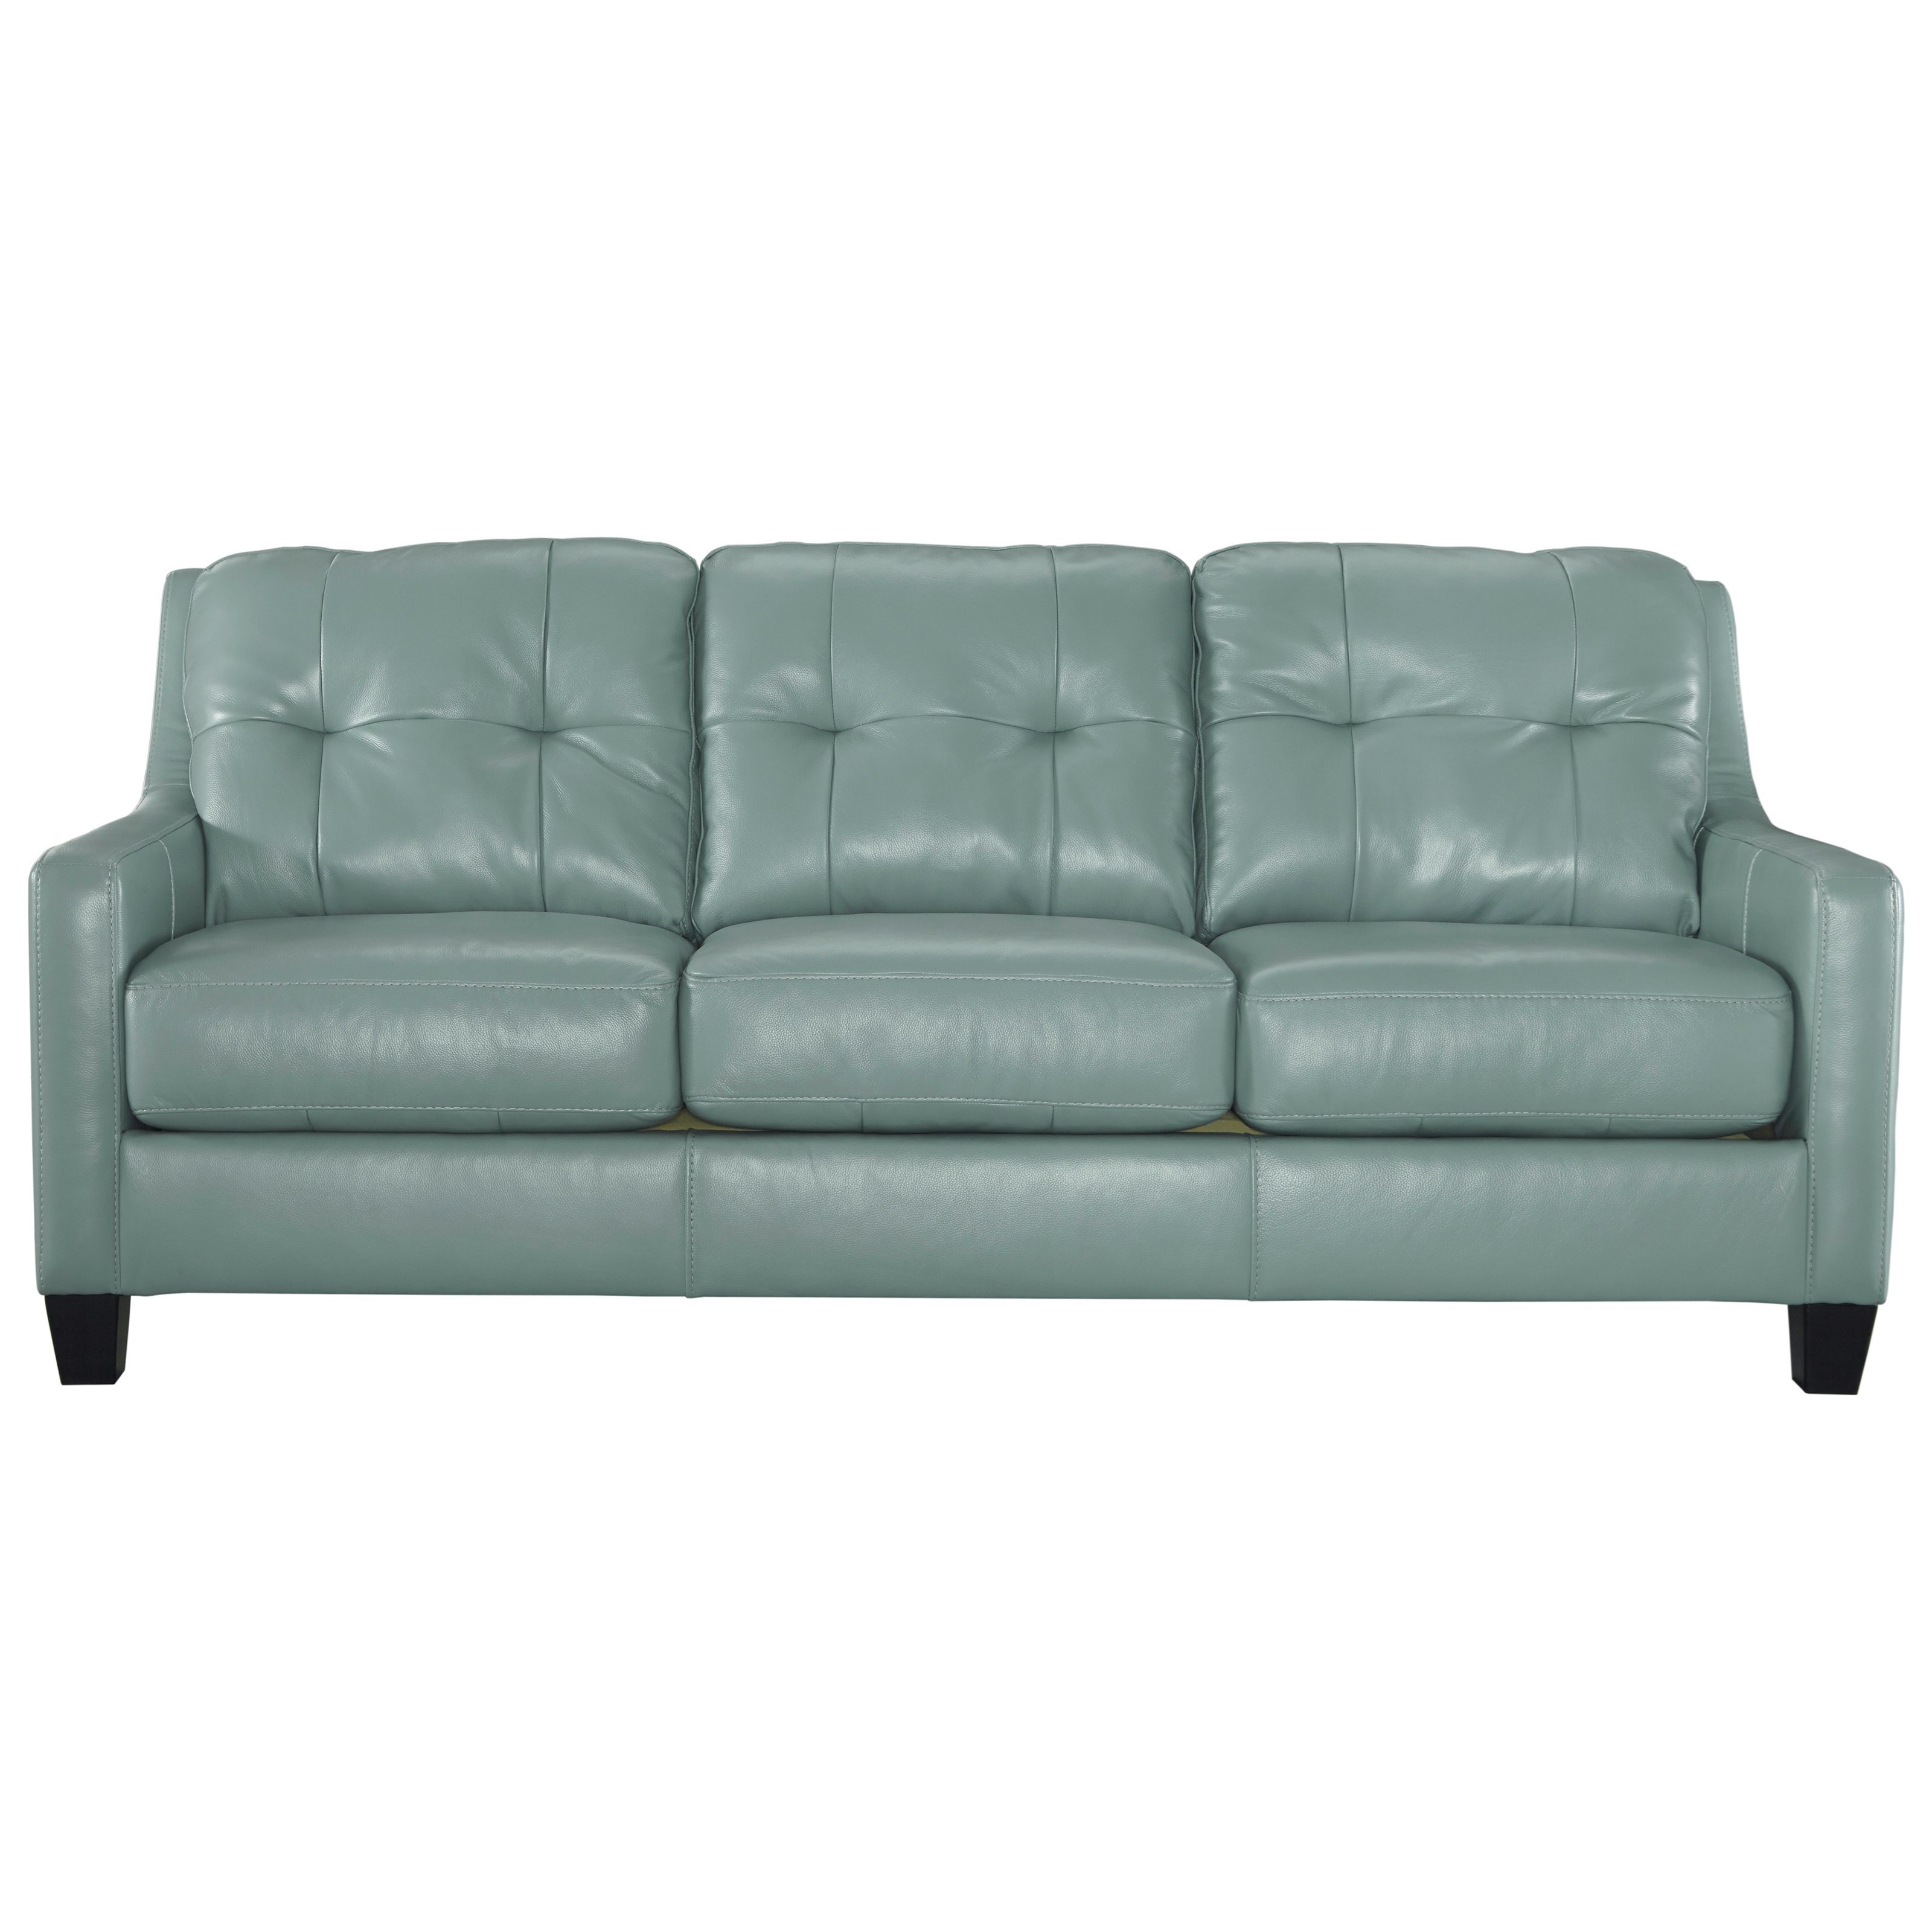 Signature Design By Ashley Ou0027Kean Sofa   Item Number: 5910338